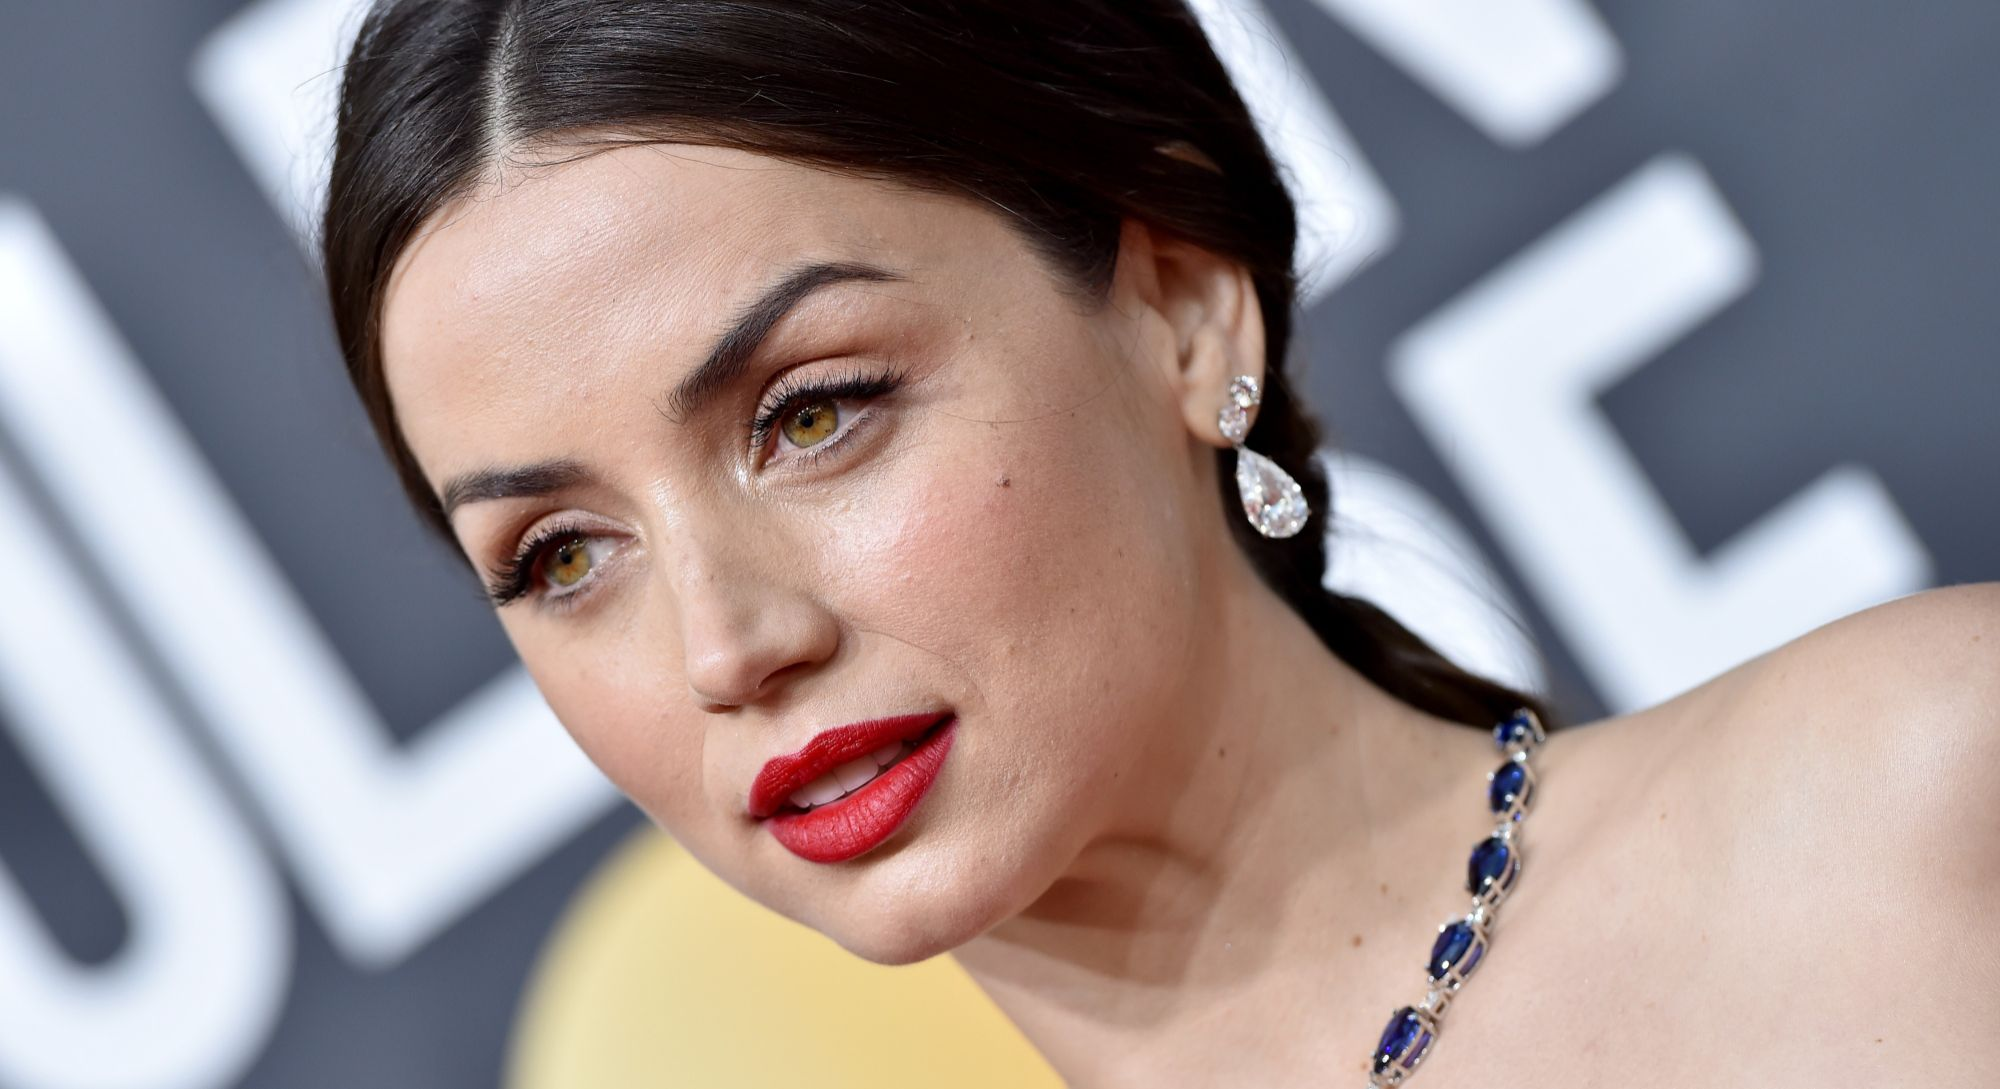 Bond girl Ana De Armas opens up about leaving Cuba to launch acting career with just £260 in her pocket